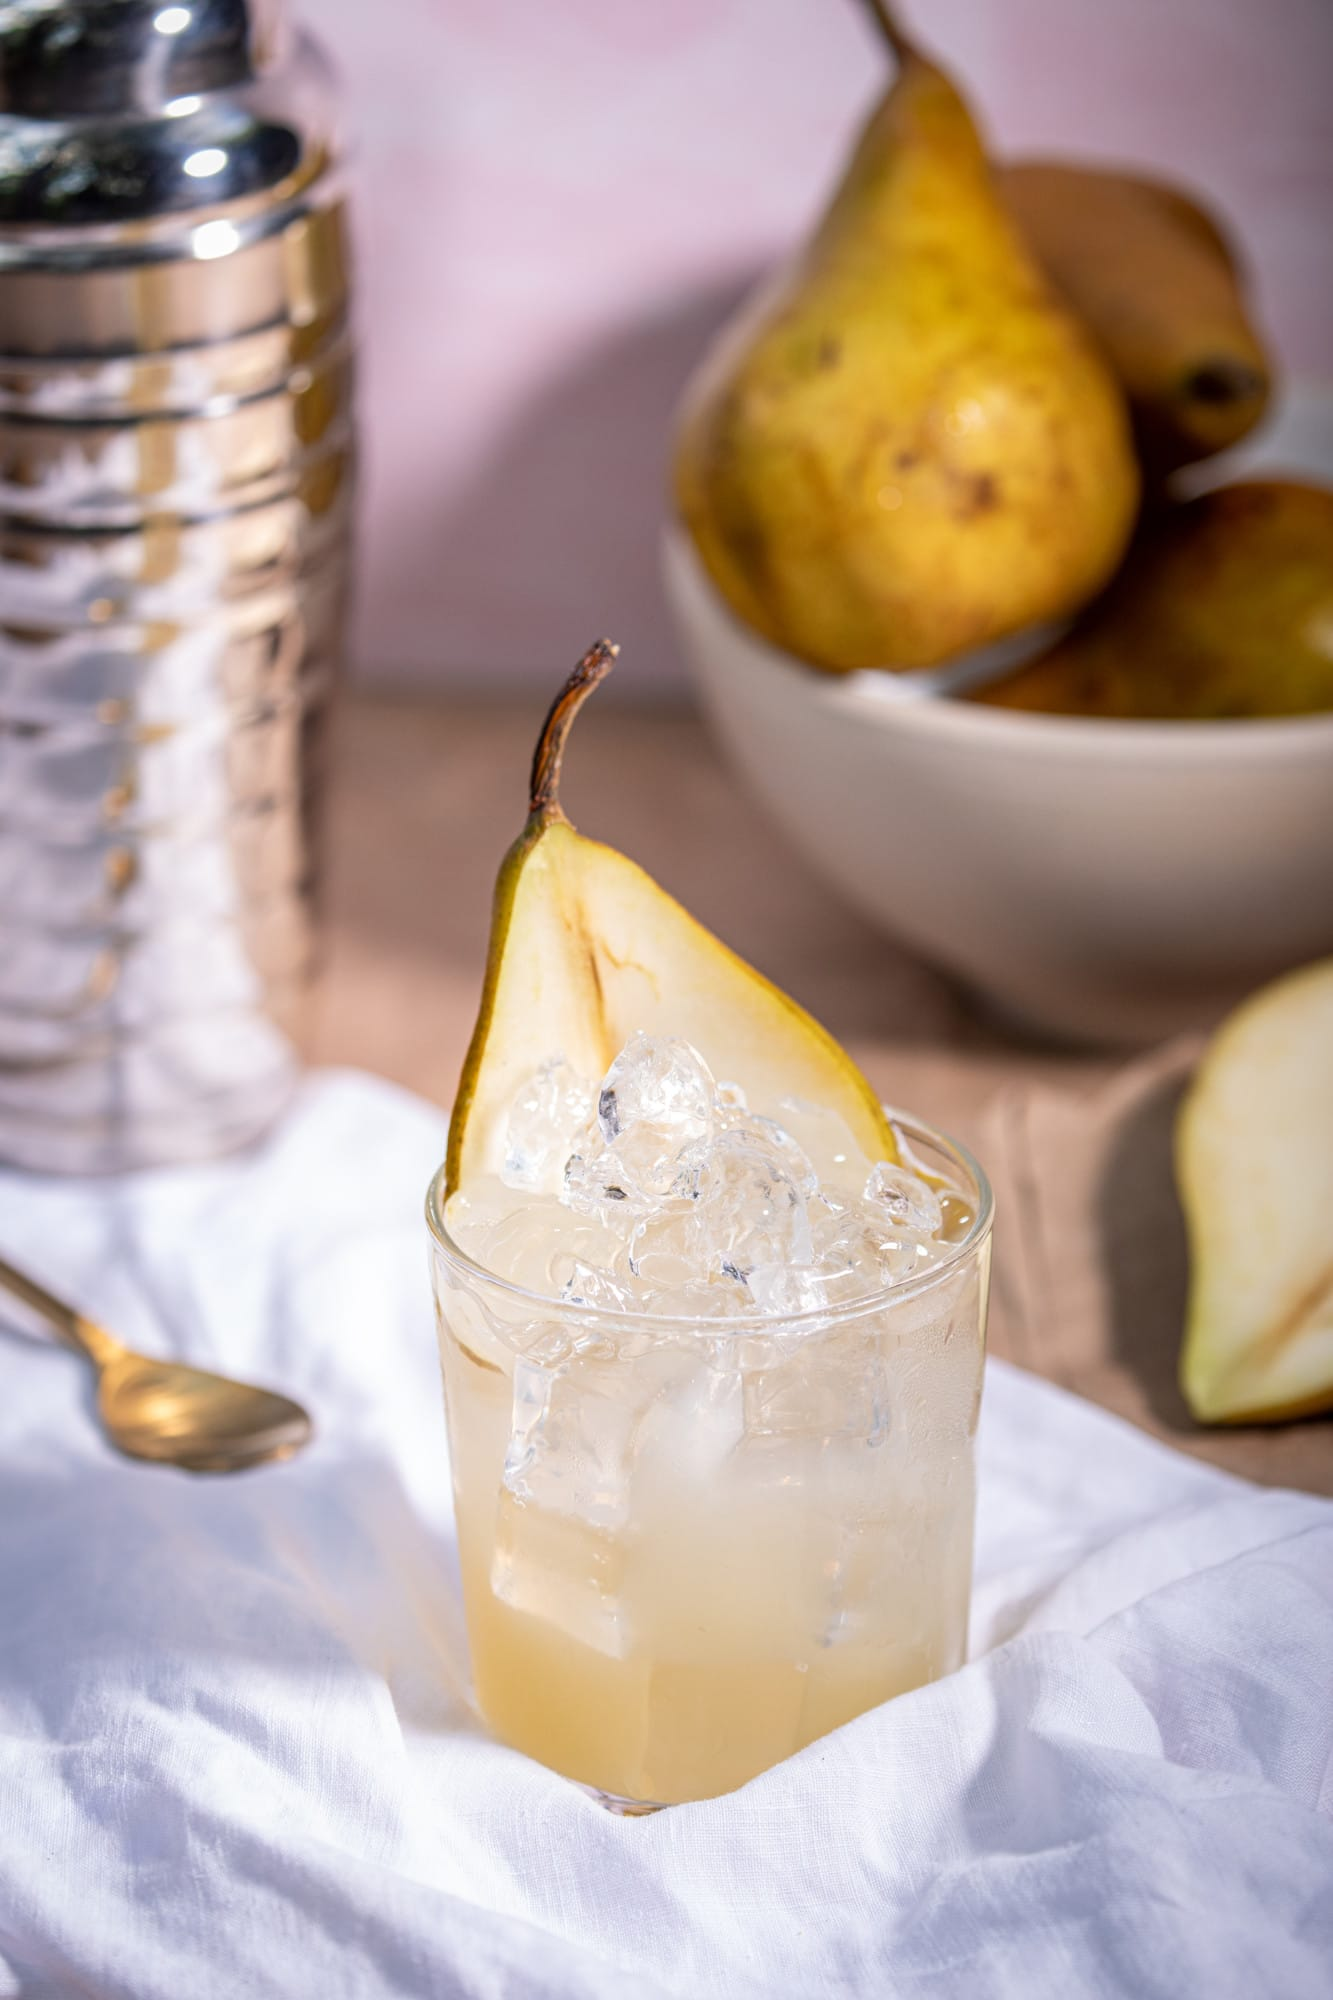 Cocktail with pear